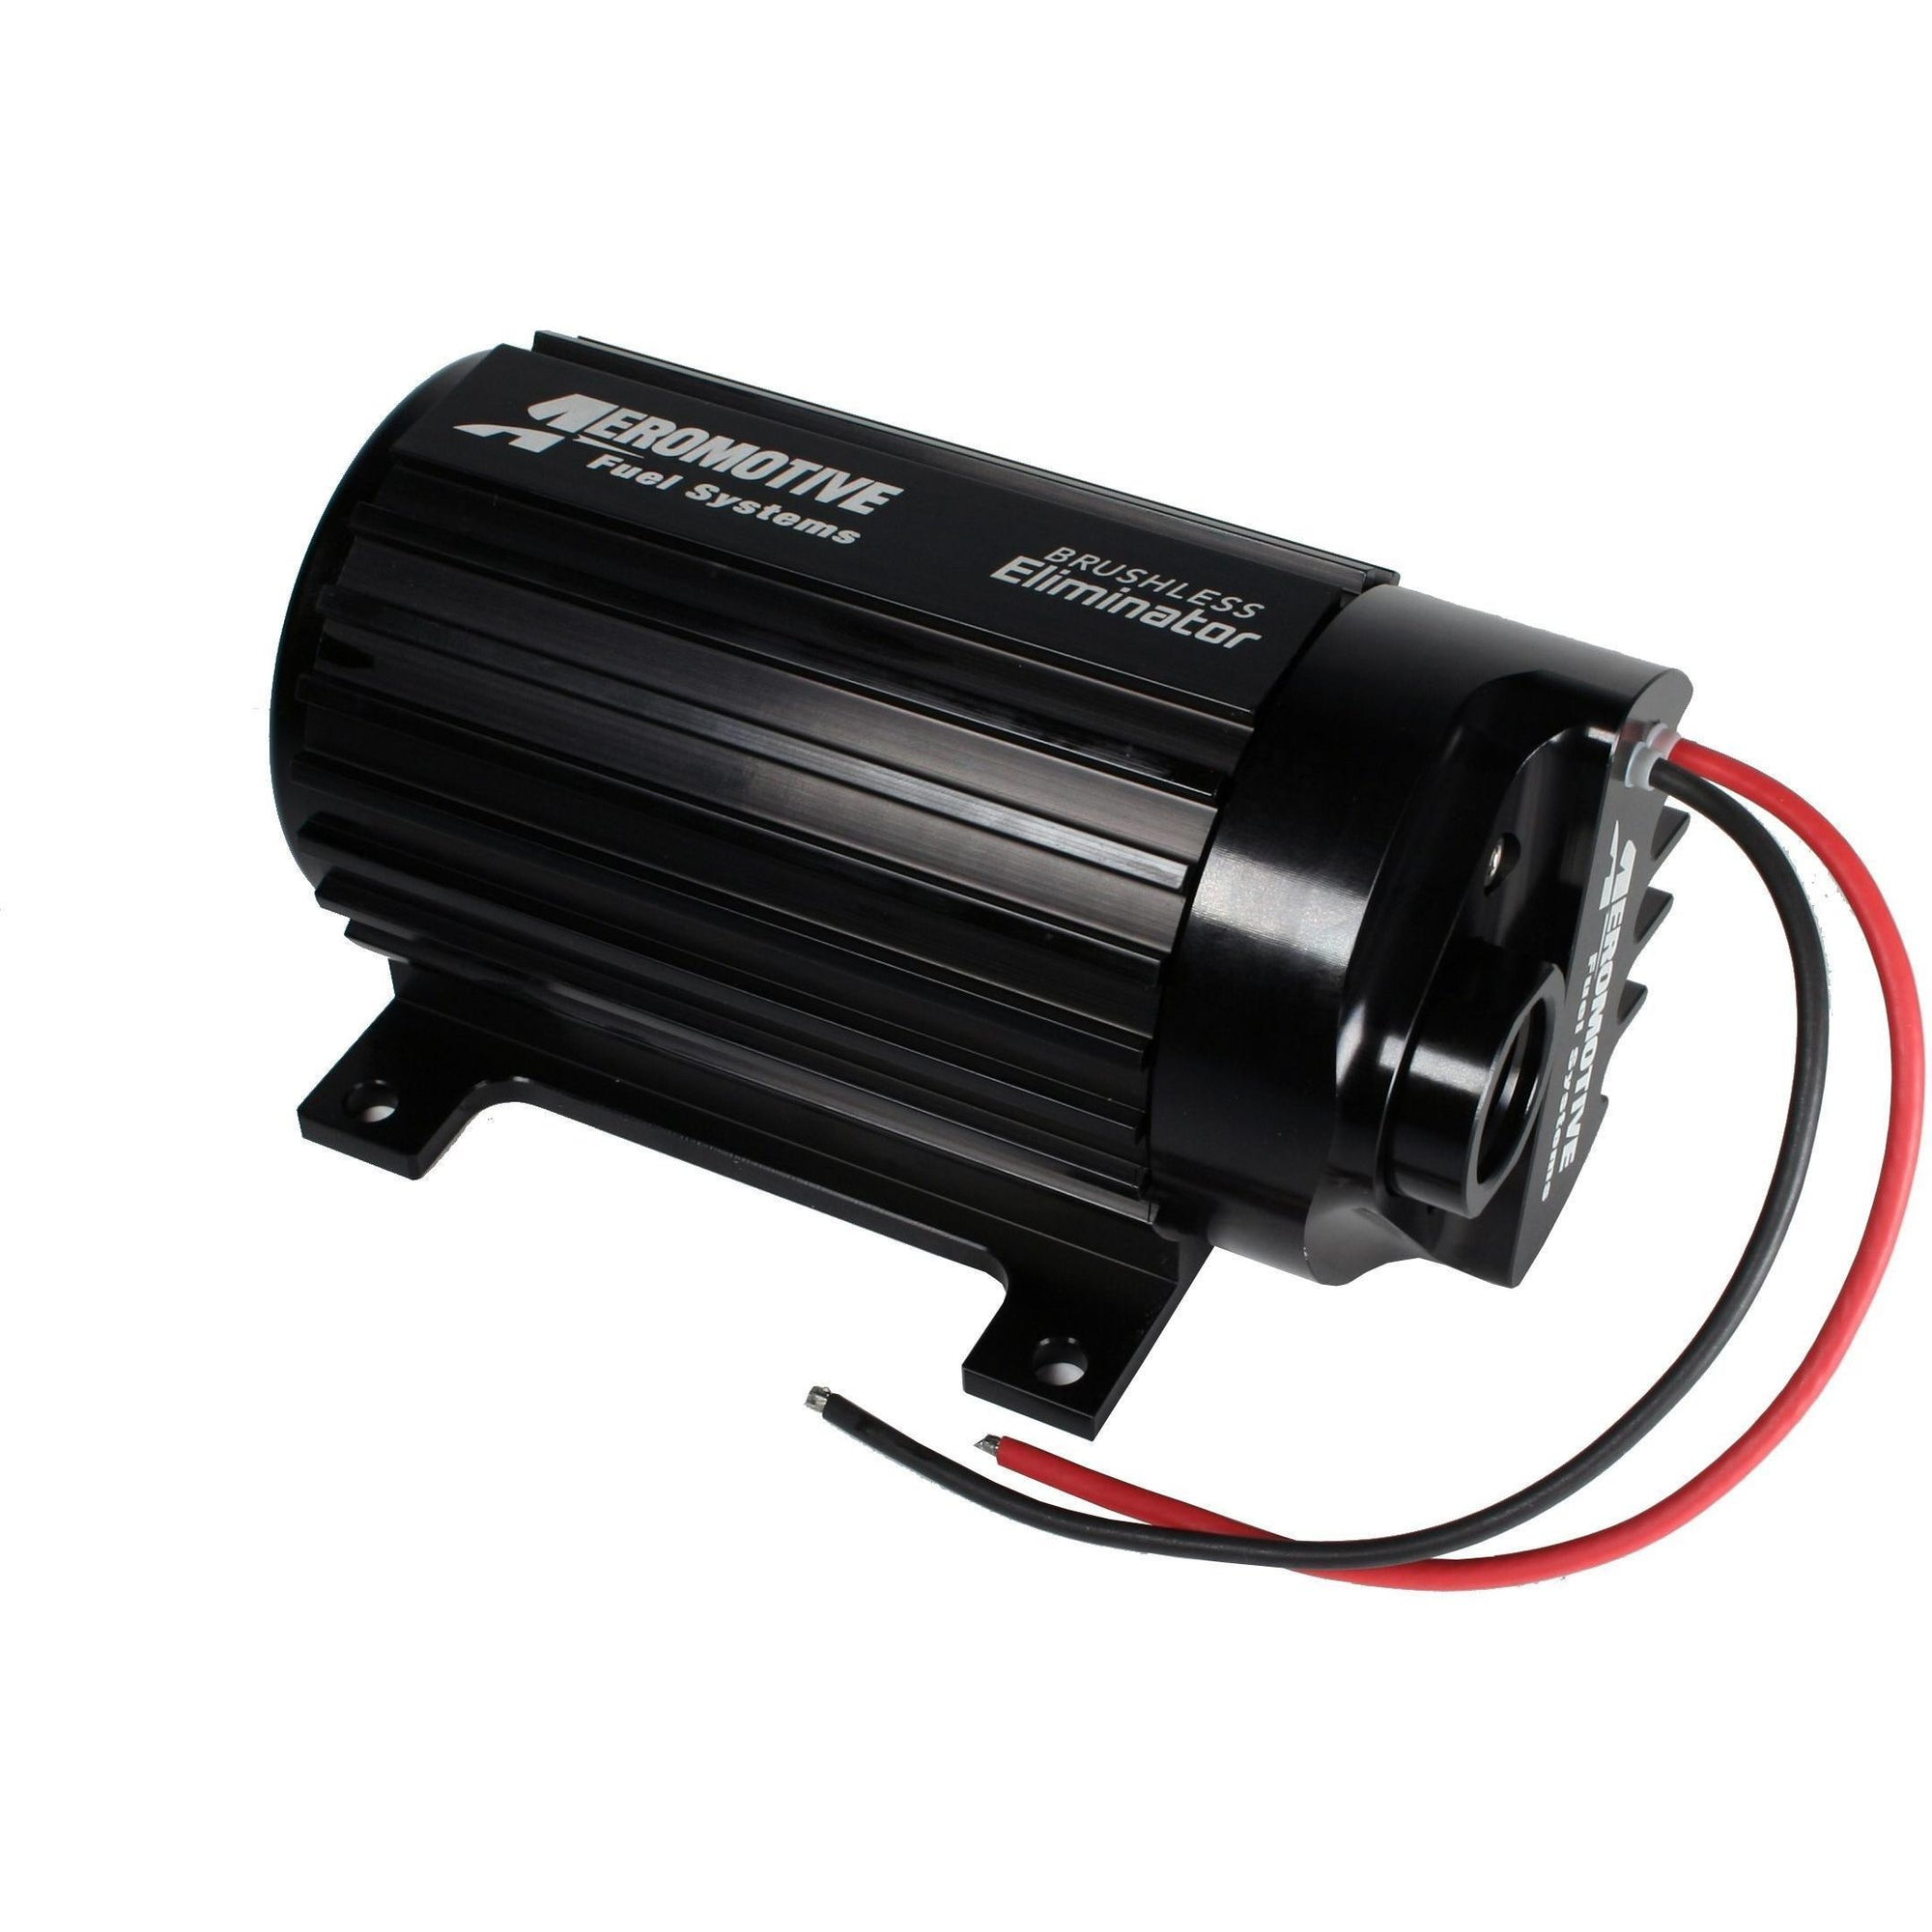 Aeromotive Brushless Eliminator Signature Pump, w/Feet 11184-Aeromotive-Motion Raceworks